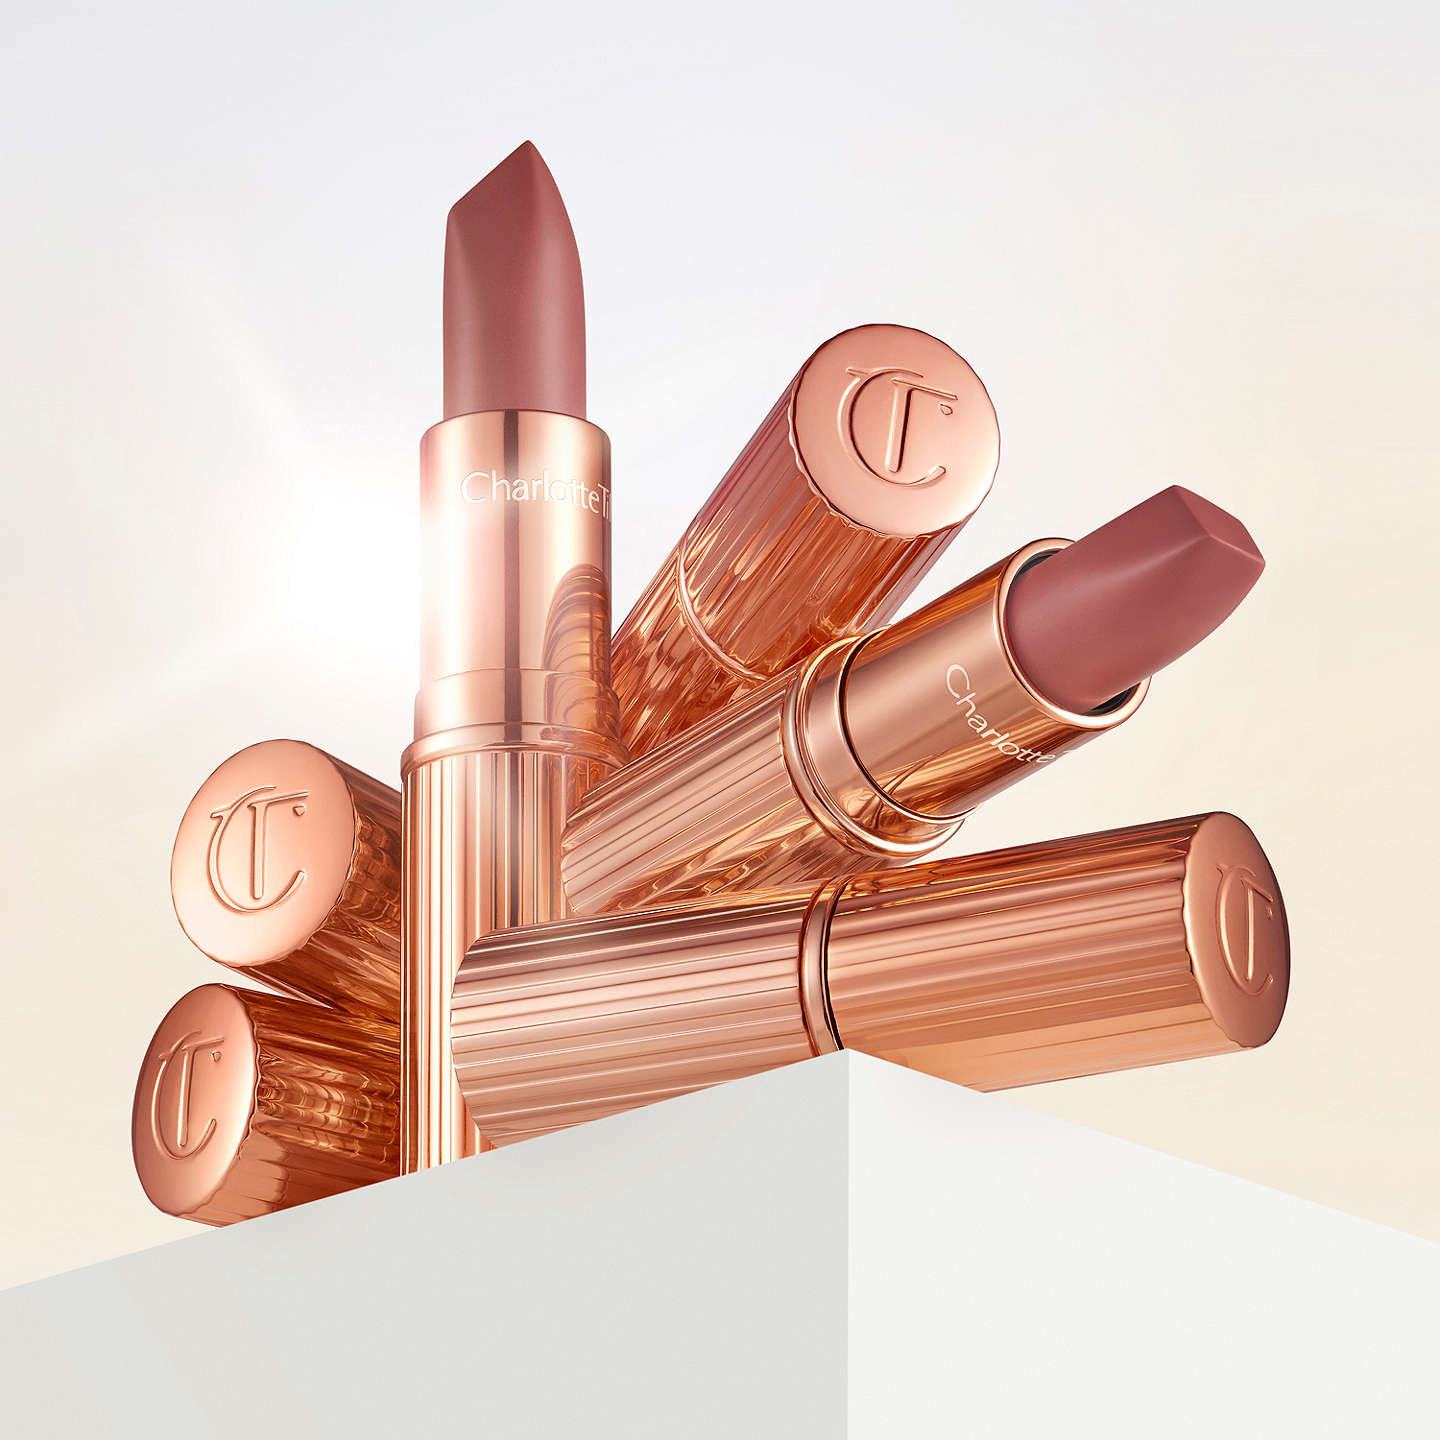 BuyCharlotte Tilbury Matte Revolution Lipstick, Pillow Talk Online at johnlewis.com